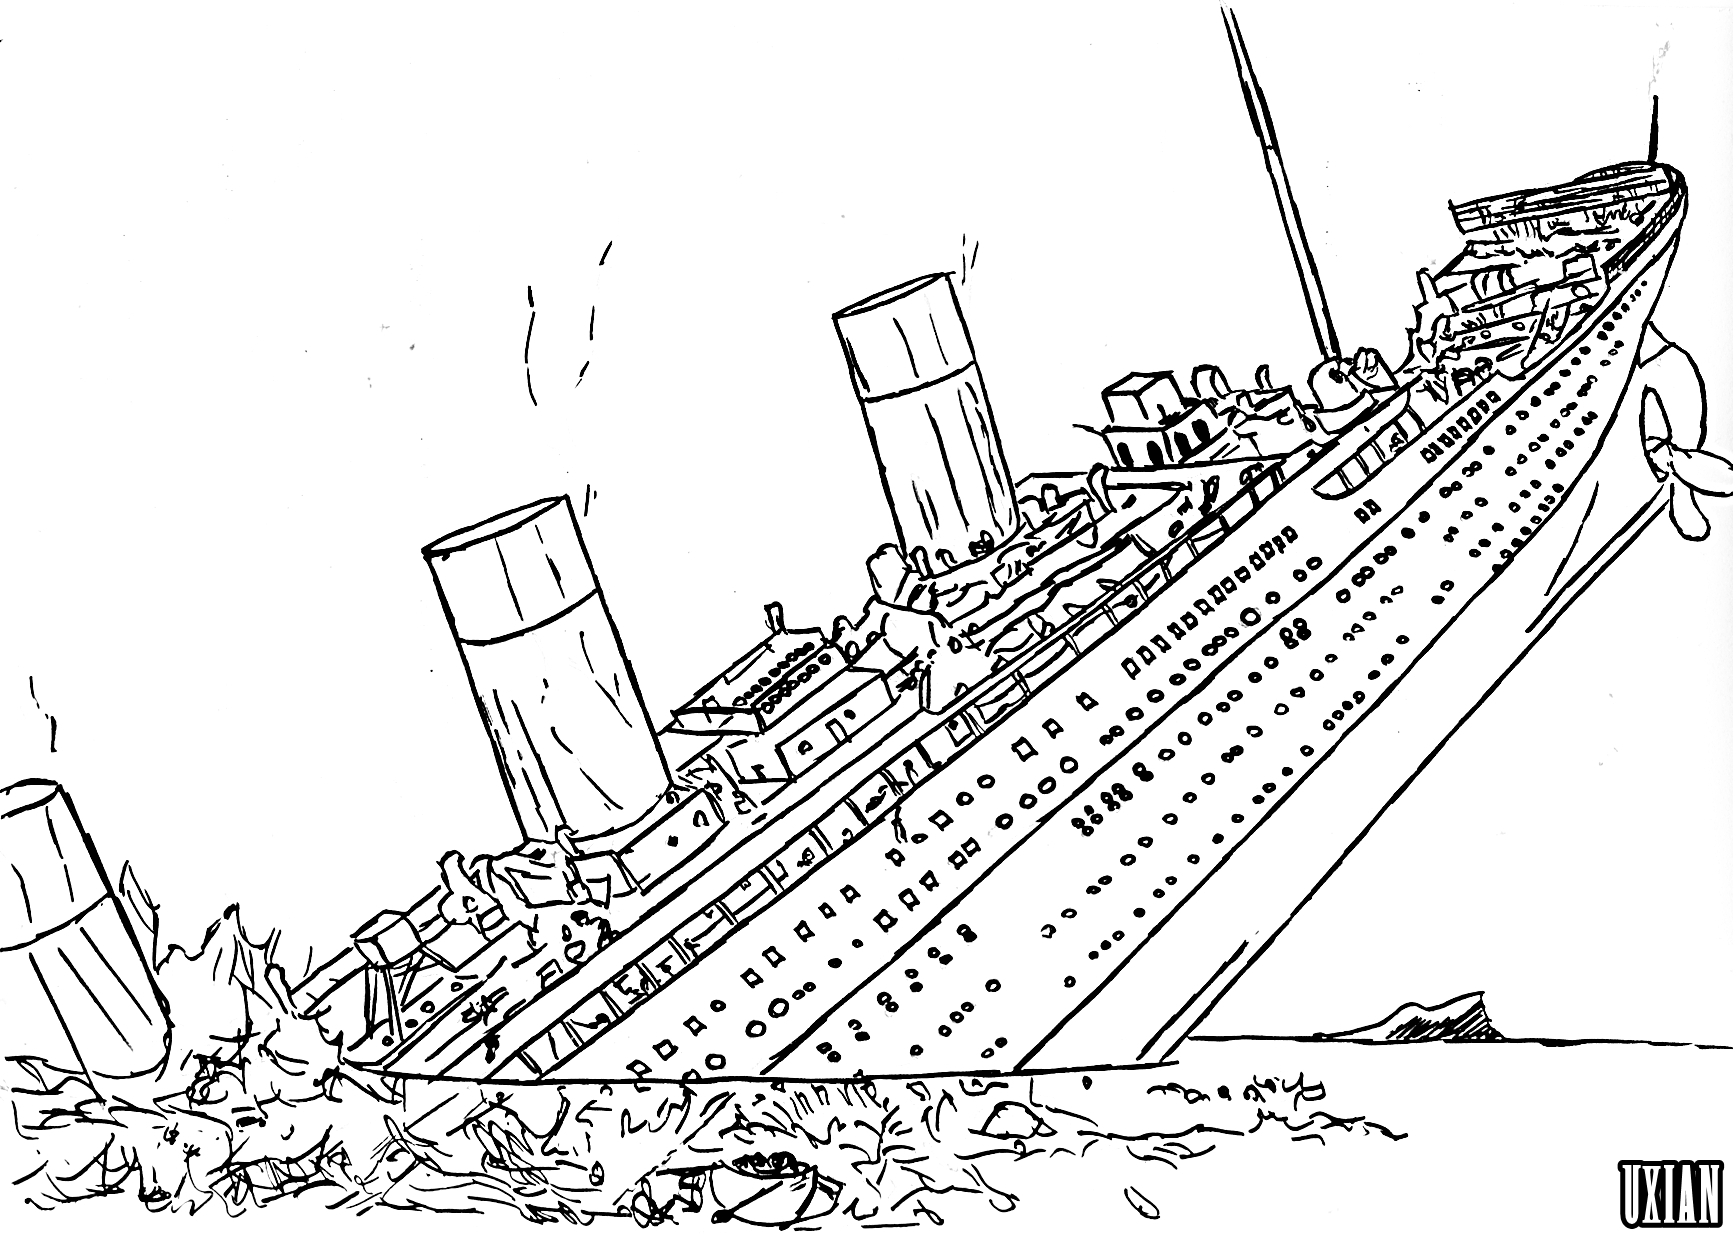 Titanic sinking by UxianXIII on DeviantArt for Titanic Coloring.